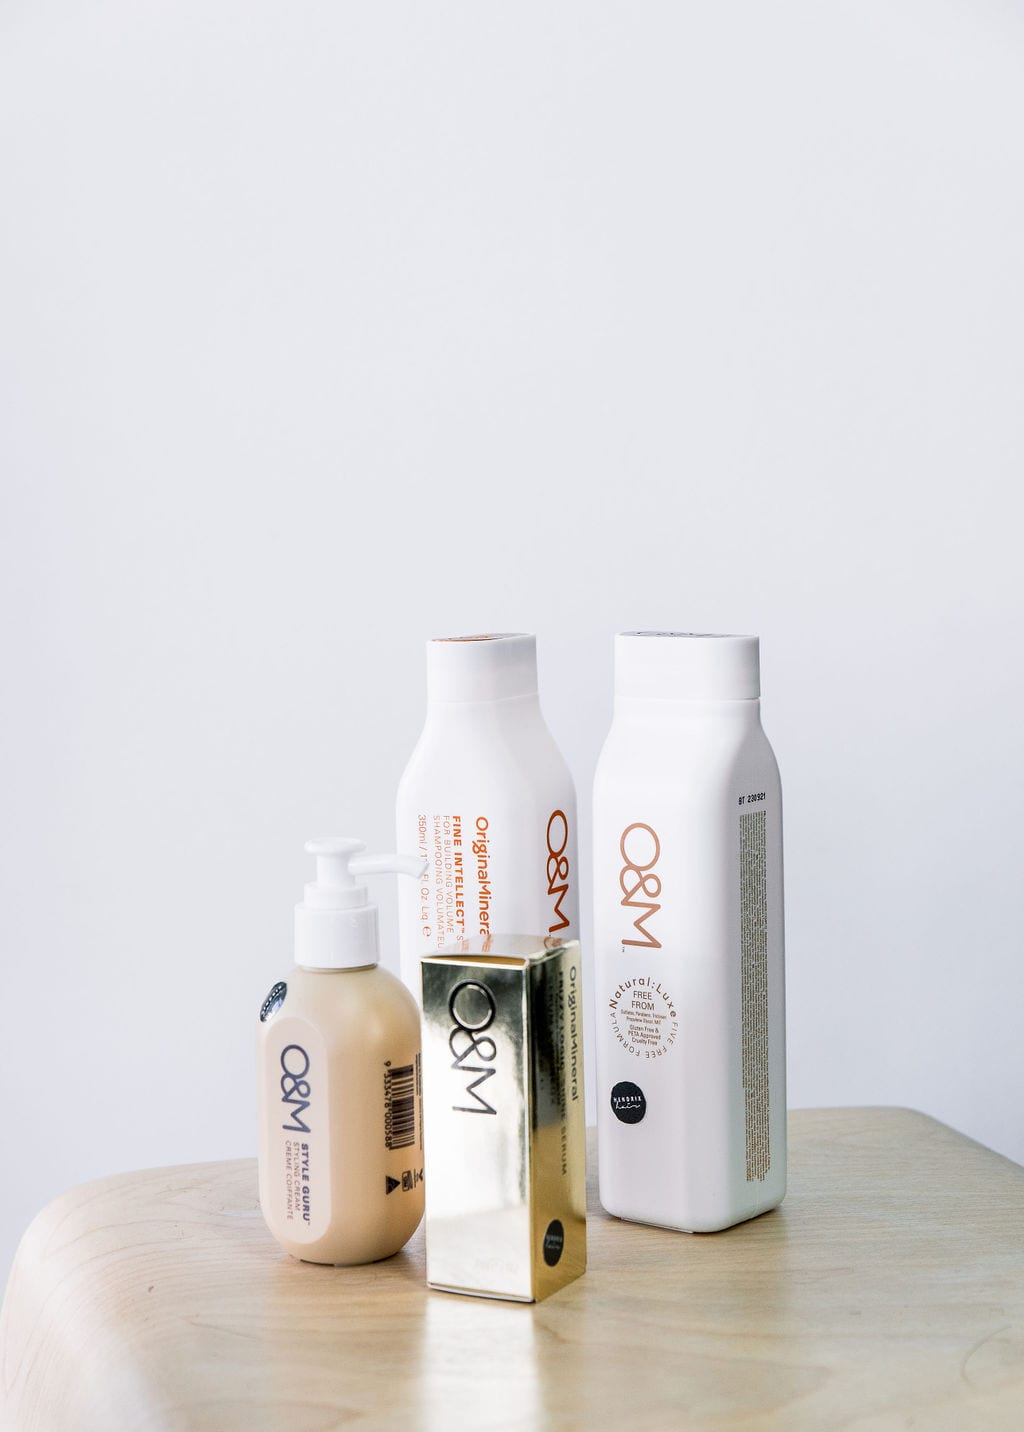 Table with bottles of hair product